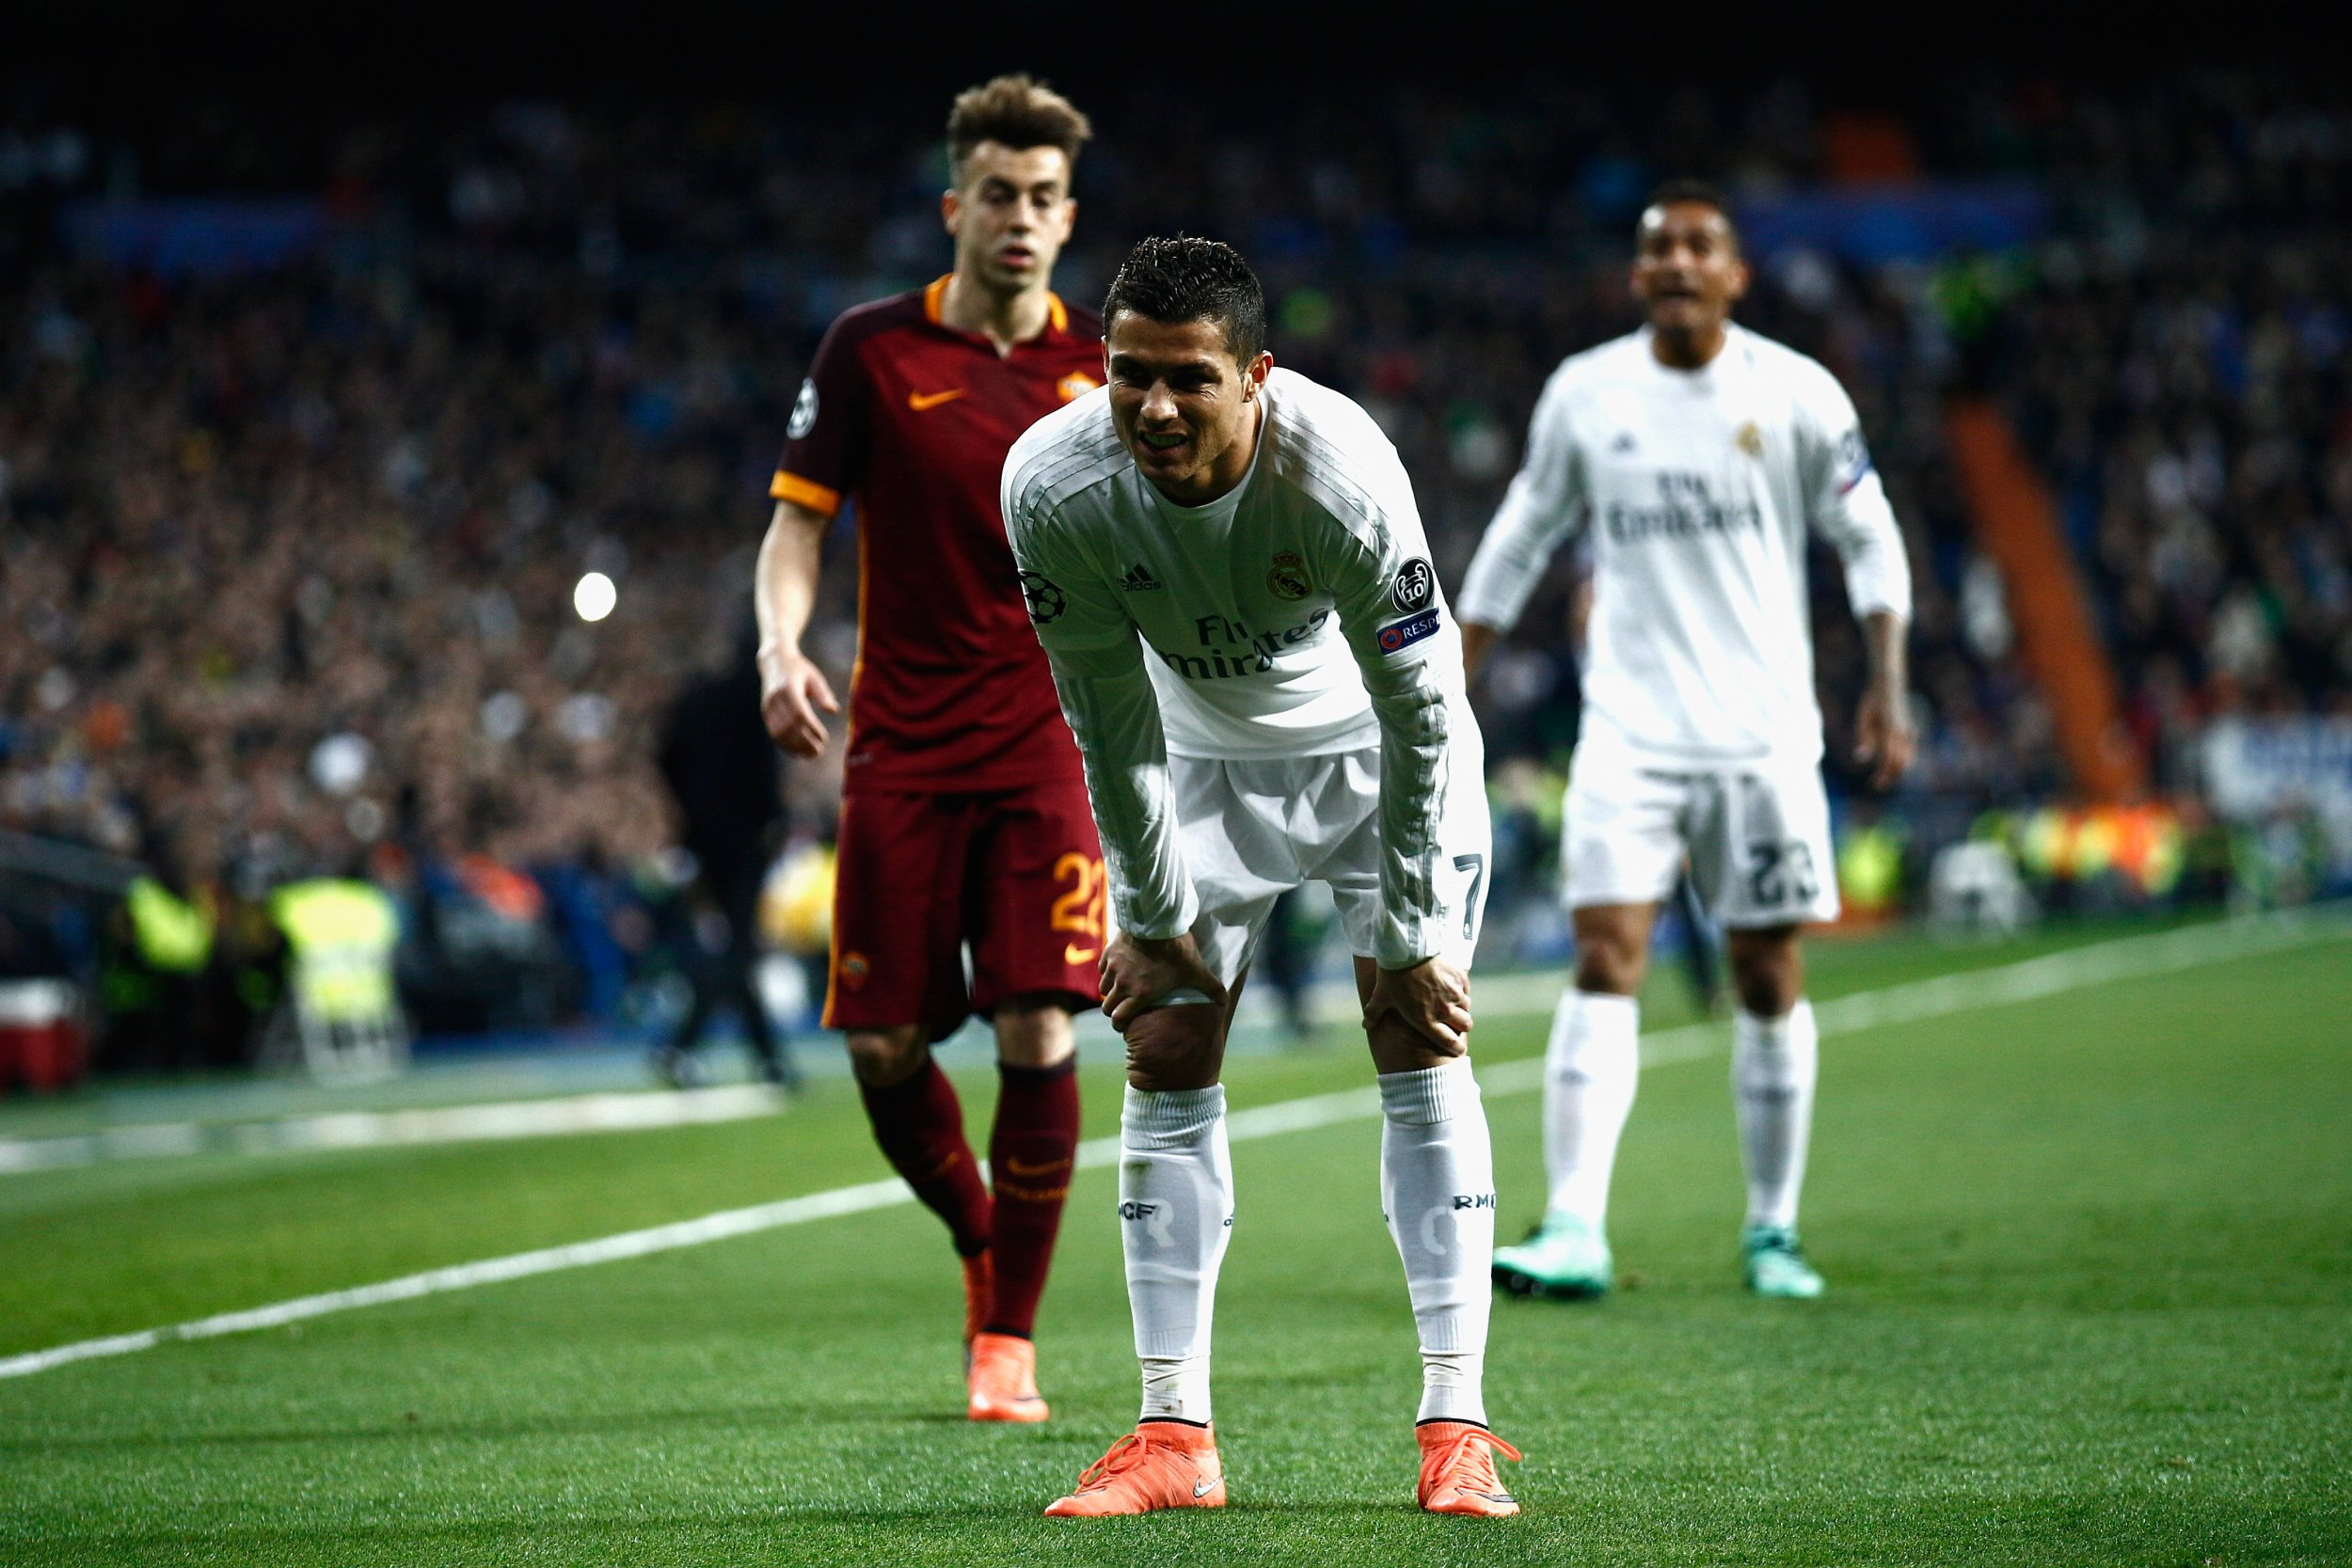 Real Madrid forward Cristiano Ronaldo in the Santiago Bernabeu against A.S. Roma on Tuesday evening.